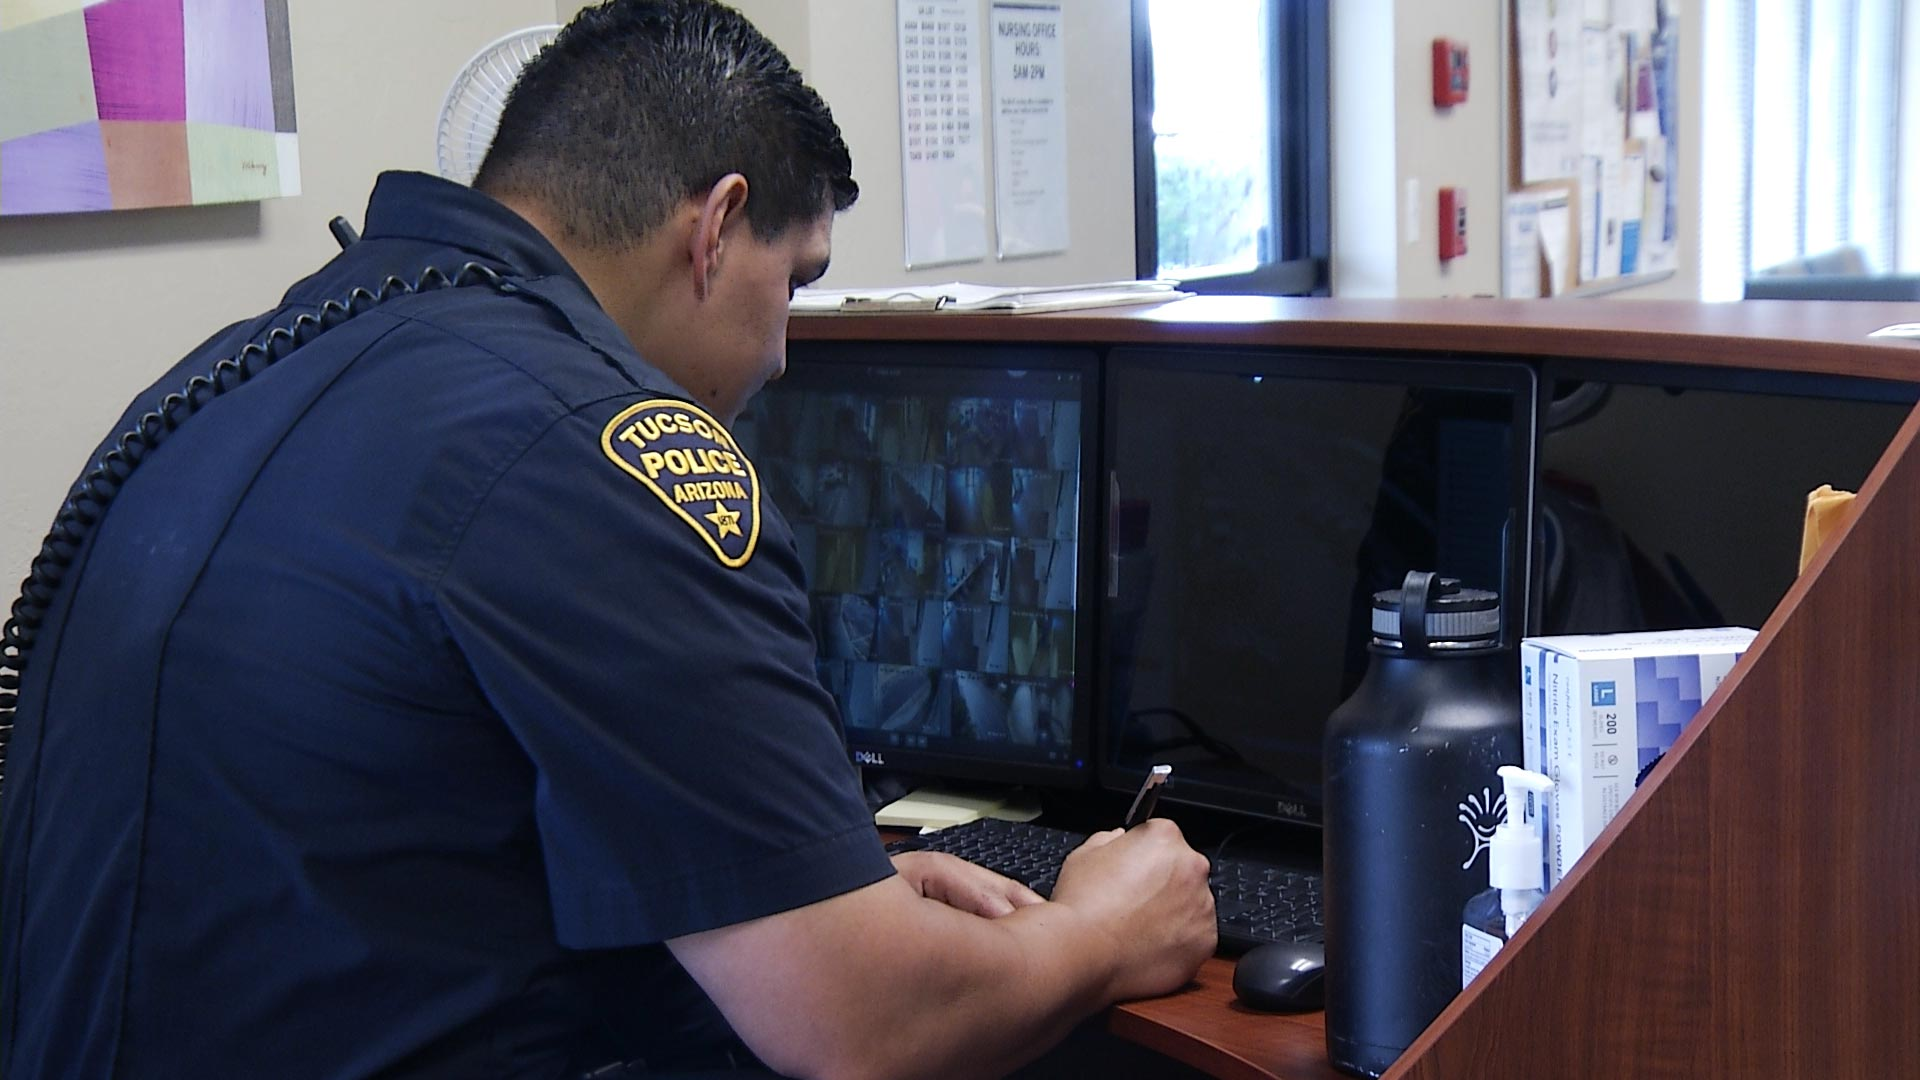 A Tucson Police officer reviews security footage at CODAC's treatment facility on August 22, 2018. The center offers medicated assisted treatment to help patients detox from opioids.